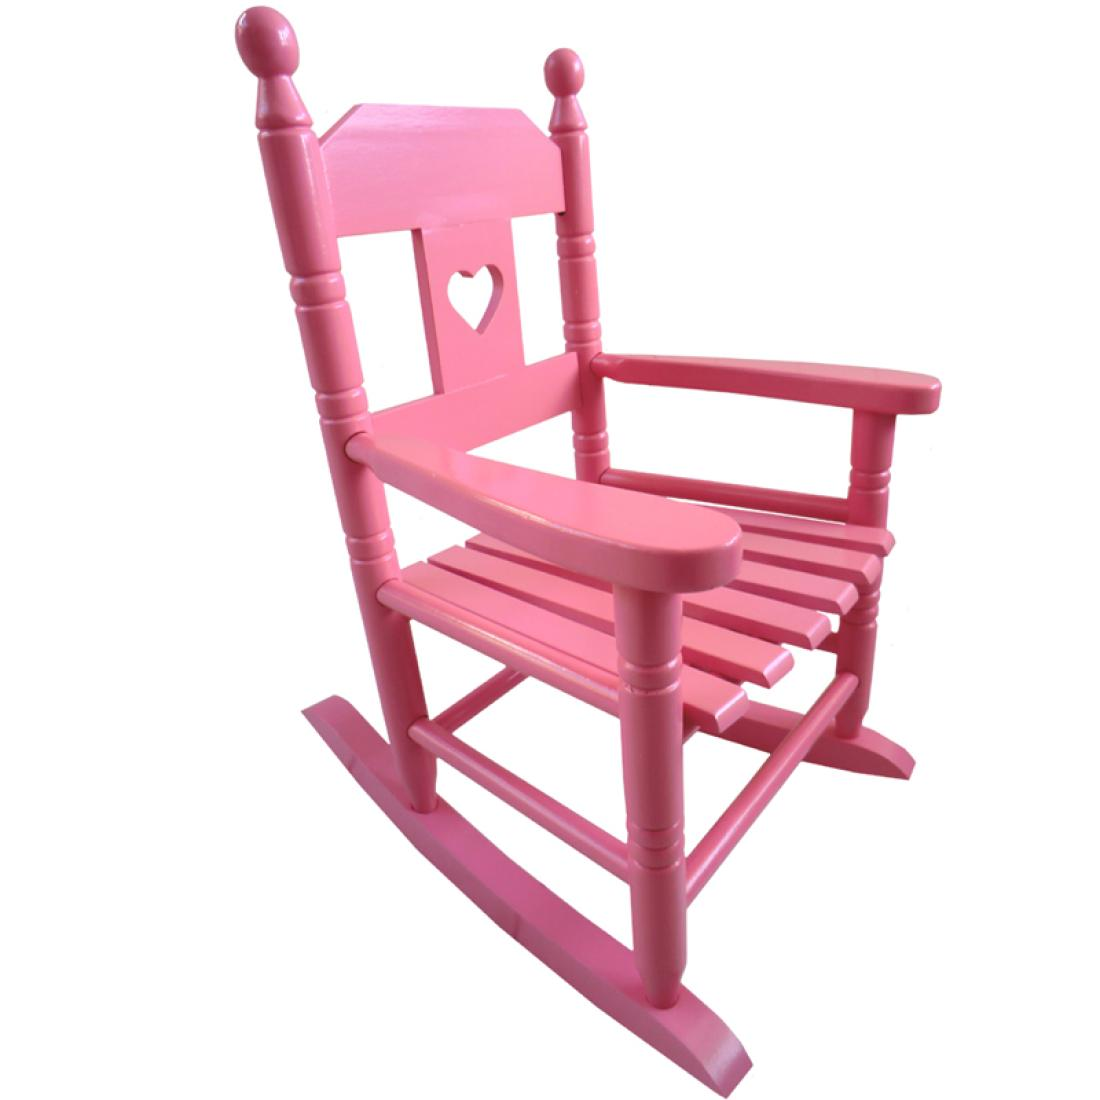 Childrens Rocking Chair Pink Childs Rocking Chair Childrens Rocking Chair Kids